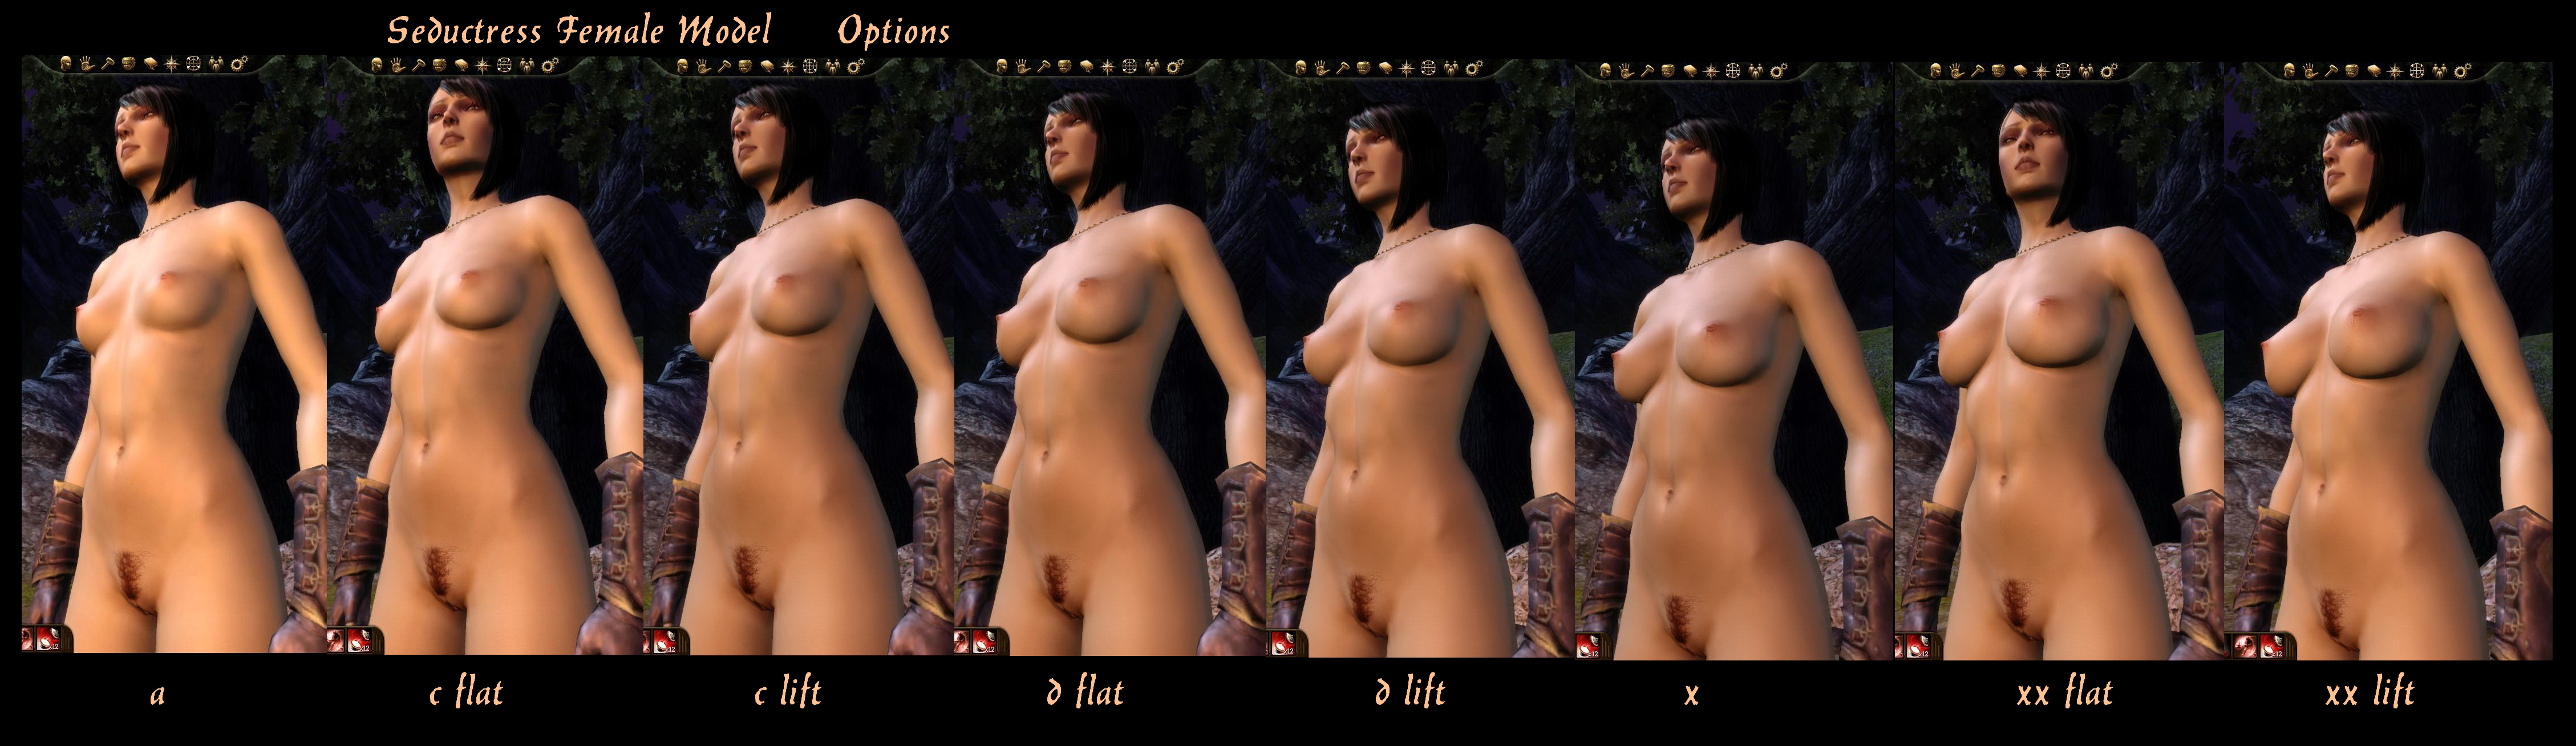 Dragon age 2 nude skins cartoon image